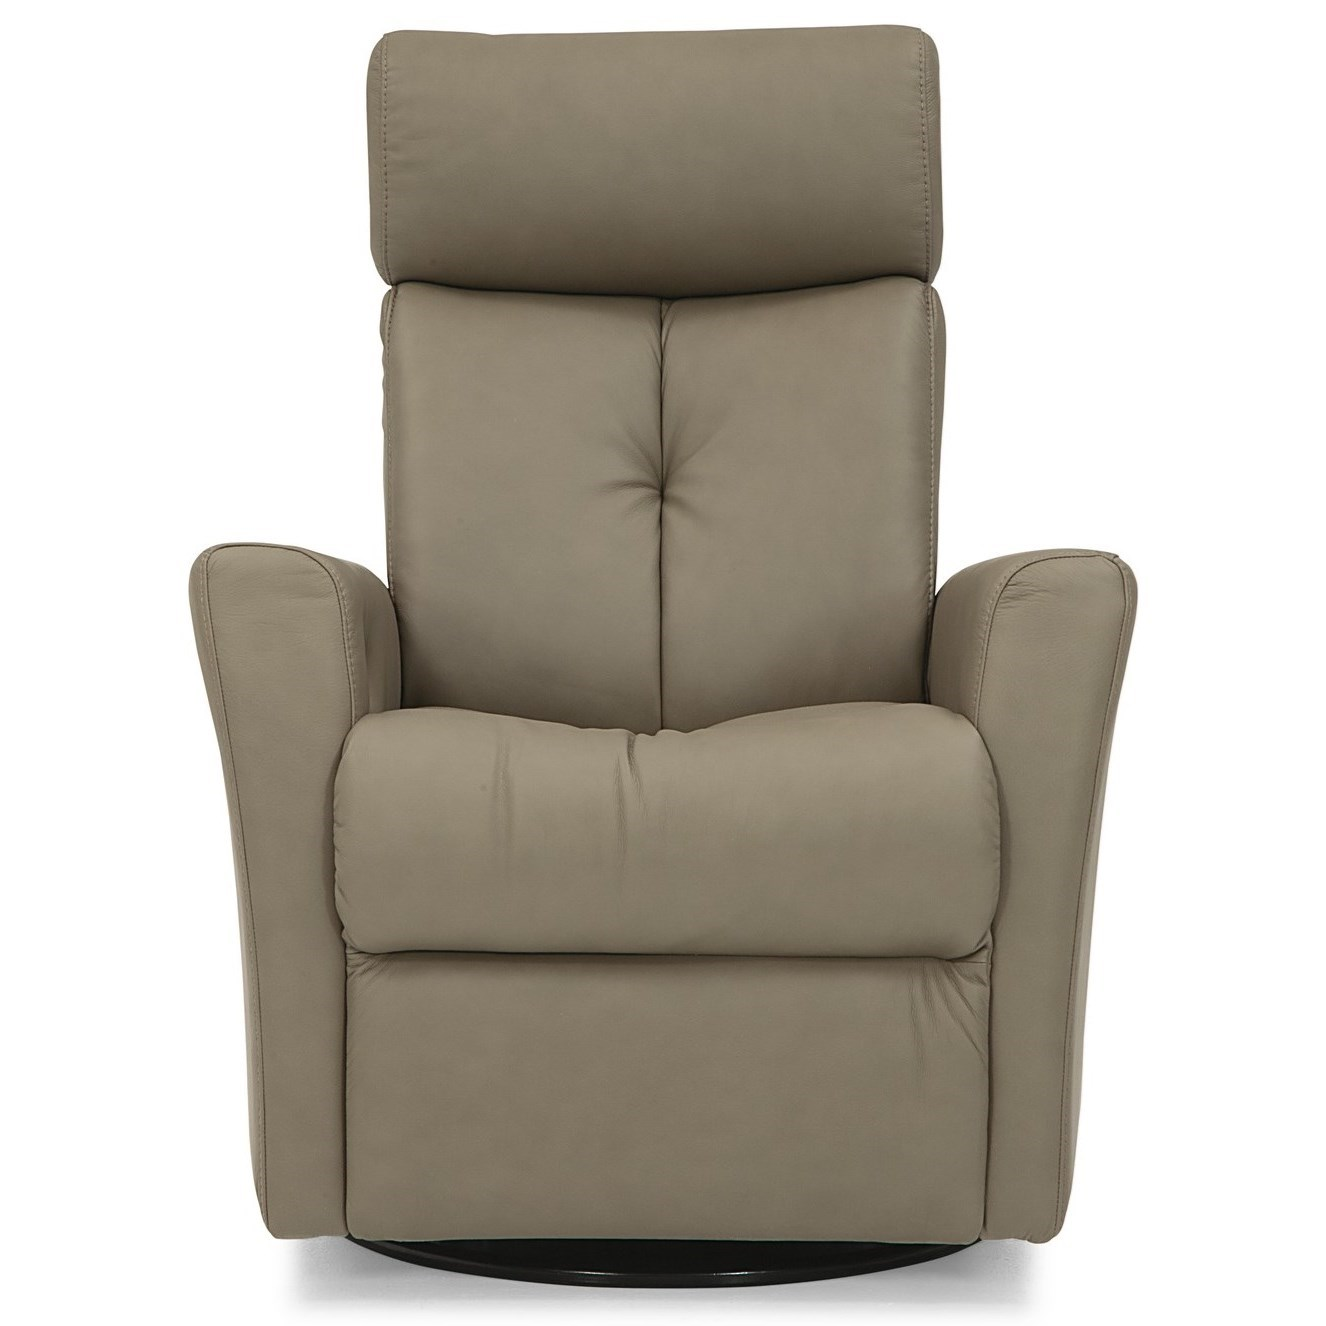 Prodigy II Wallhugger Power Recliner by Palliser at Corner Furniture